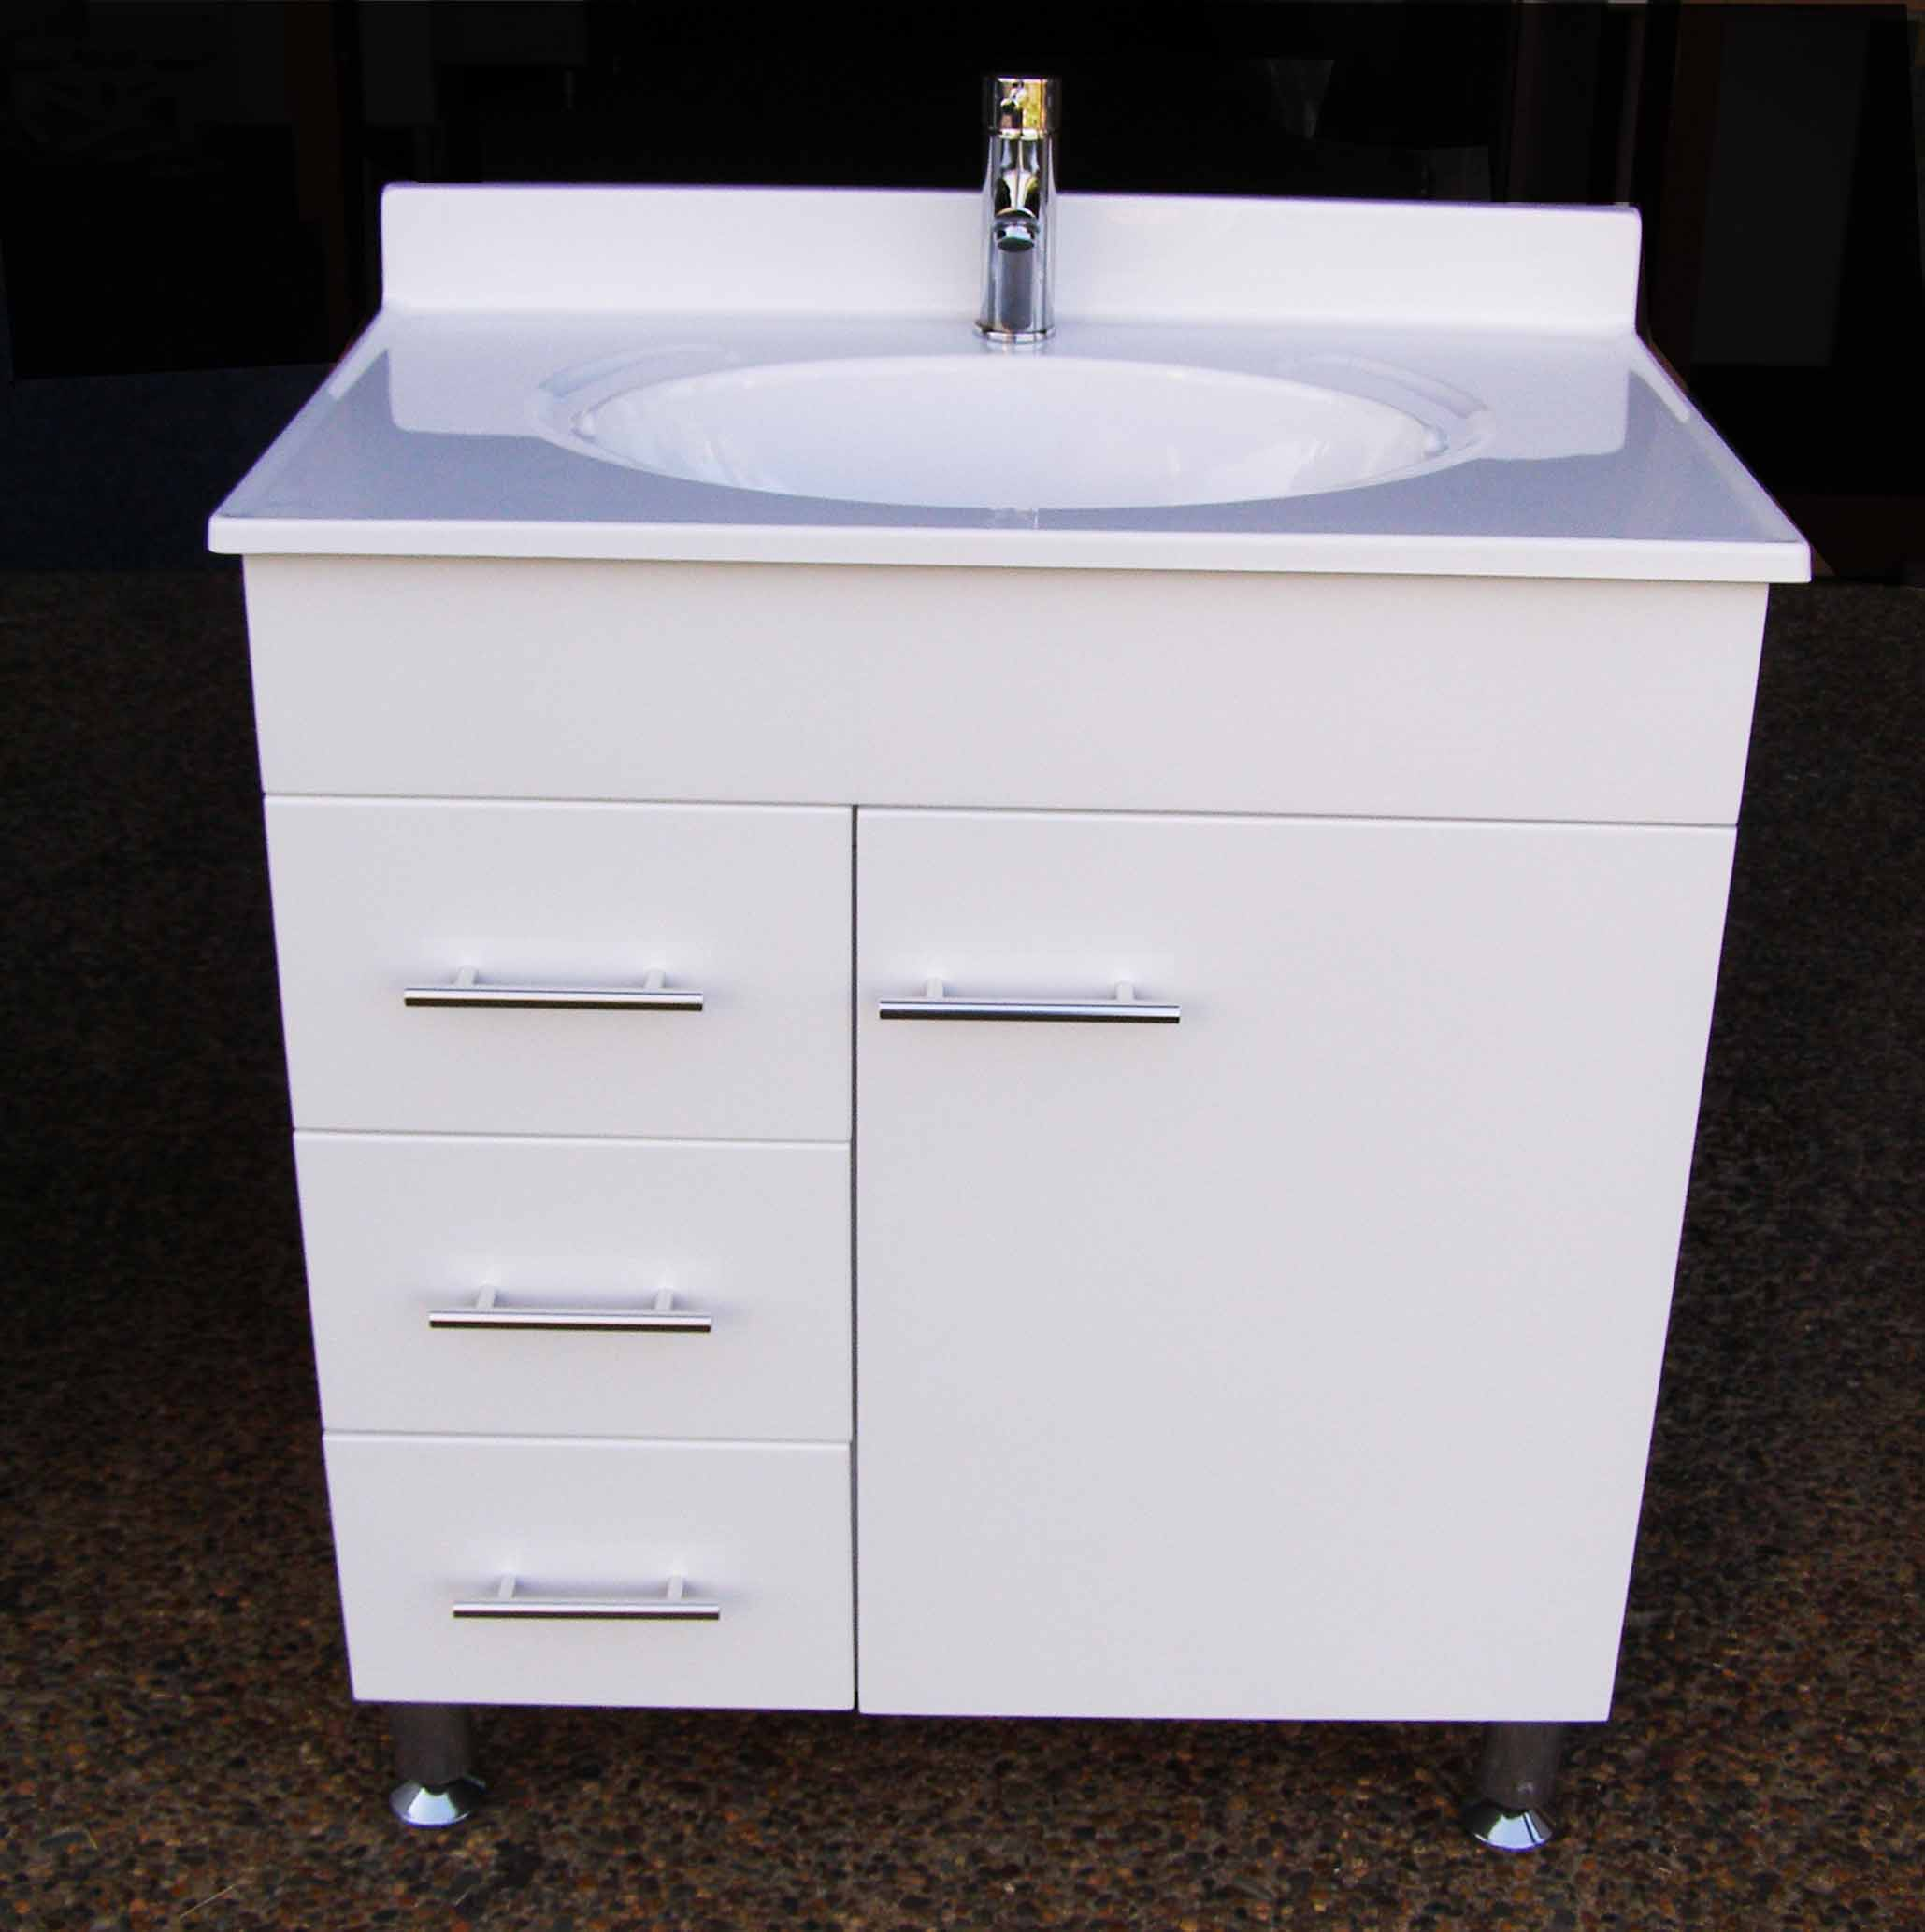 Daedalus Wpl750l 750mm Bathroom Vanity Unit With